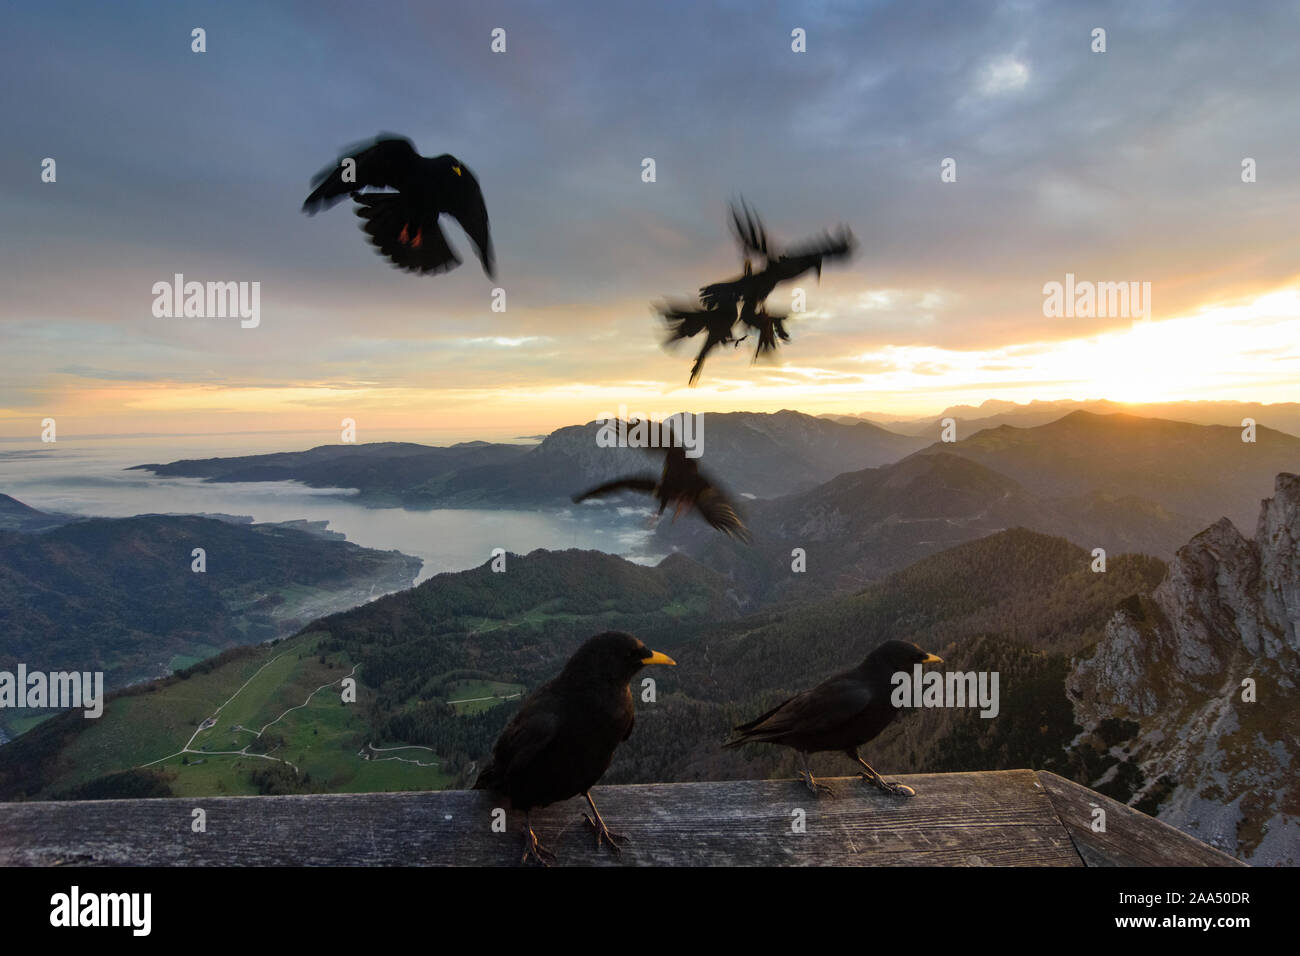 Sankt Gilgen: view from mountain Schafberg to lake Attersee (with fog clouds above the water), summit Spinnerin, bird Alpine chough (Pyrrhocorax gracu Stock Photo